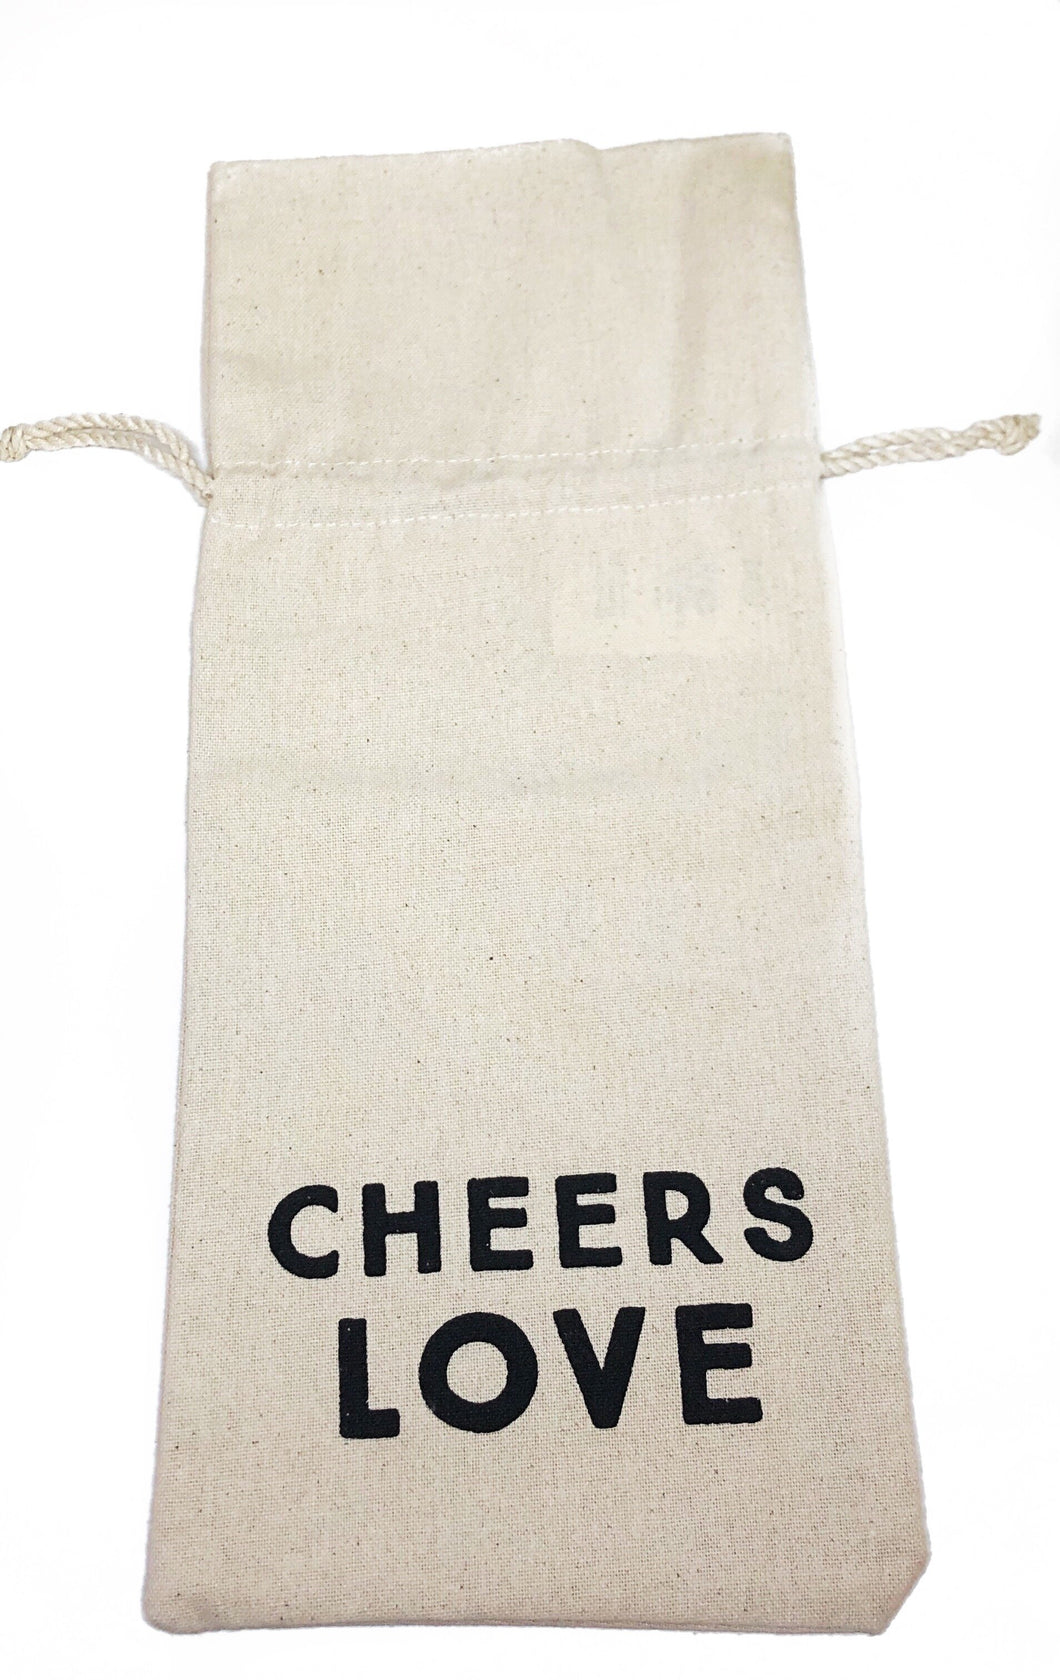 Cheers Love Wine Bag - MSP Miss Smarty Pants